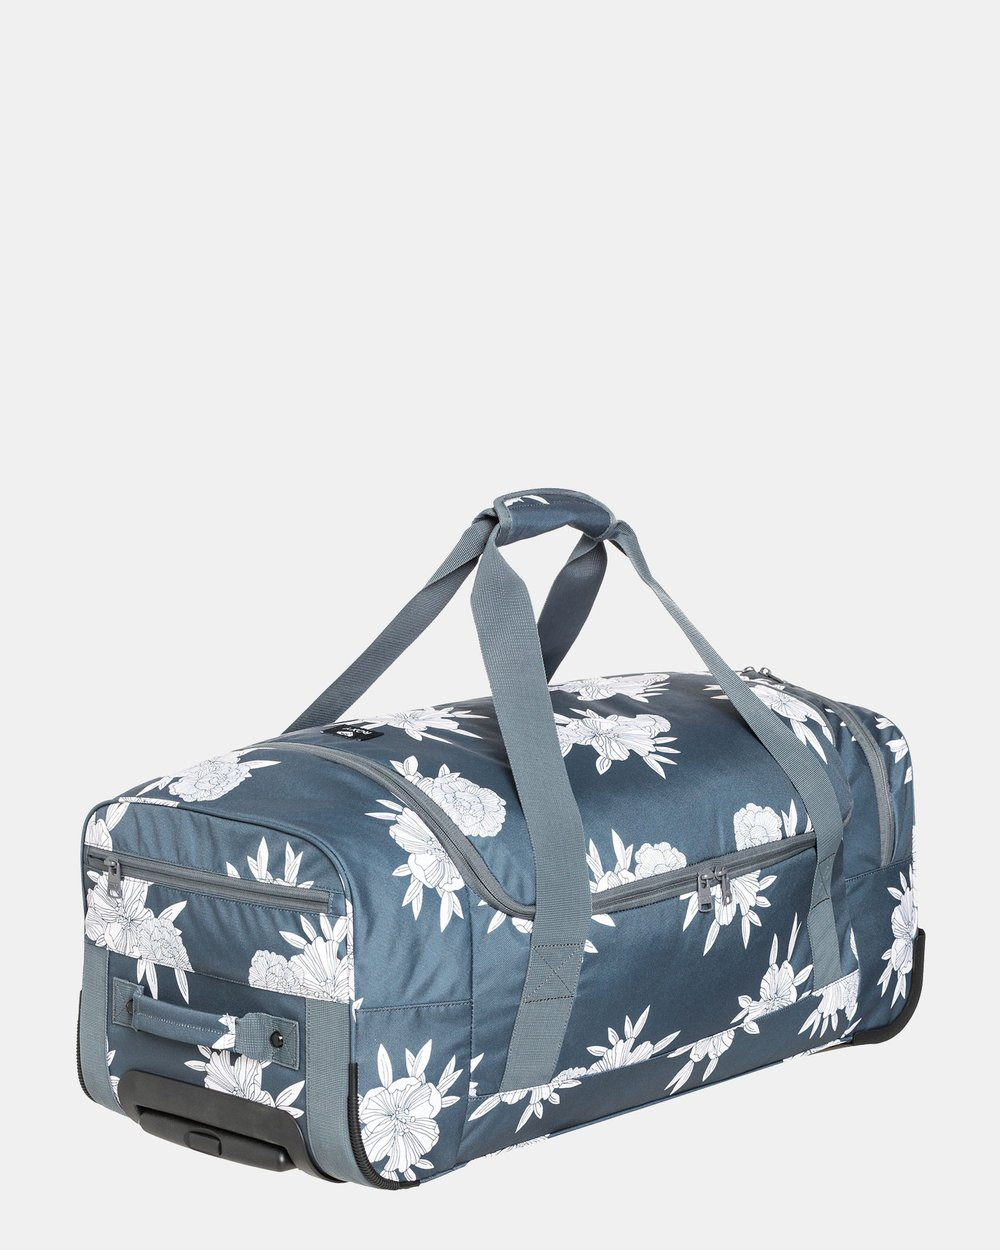 Distance Across Large Wheeled Duffle Travel Bag by Roxy Online  ce46001e5a83f